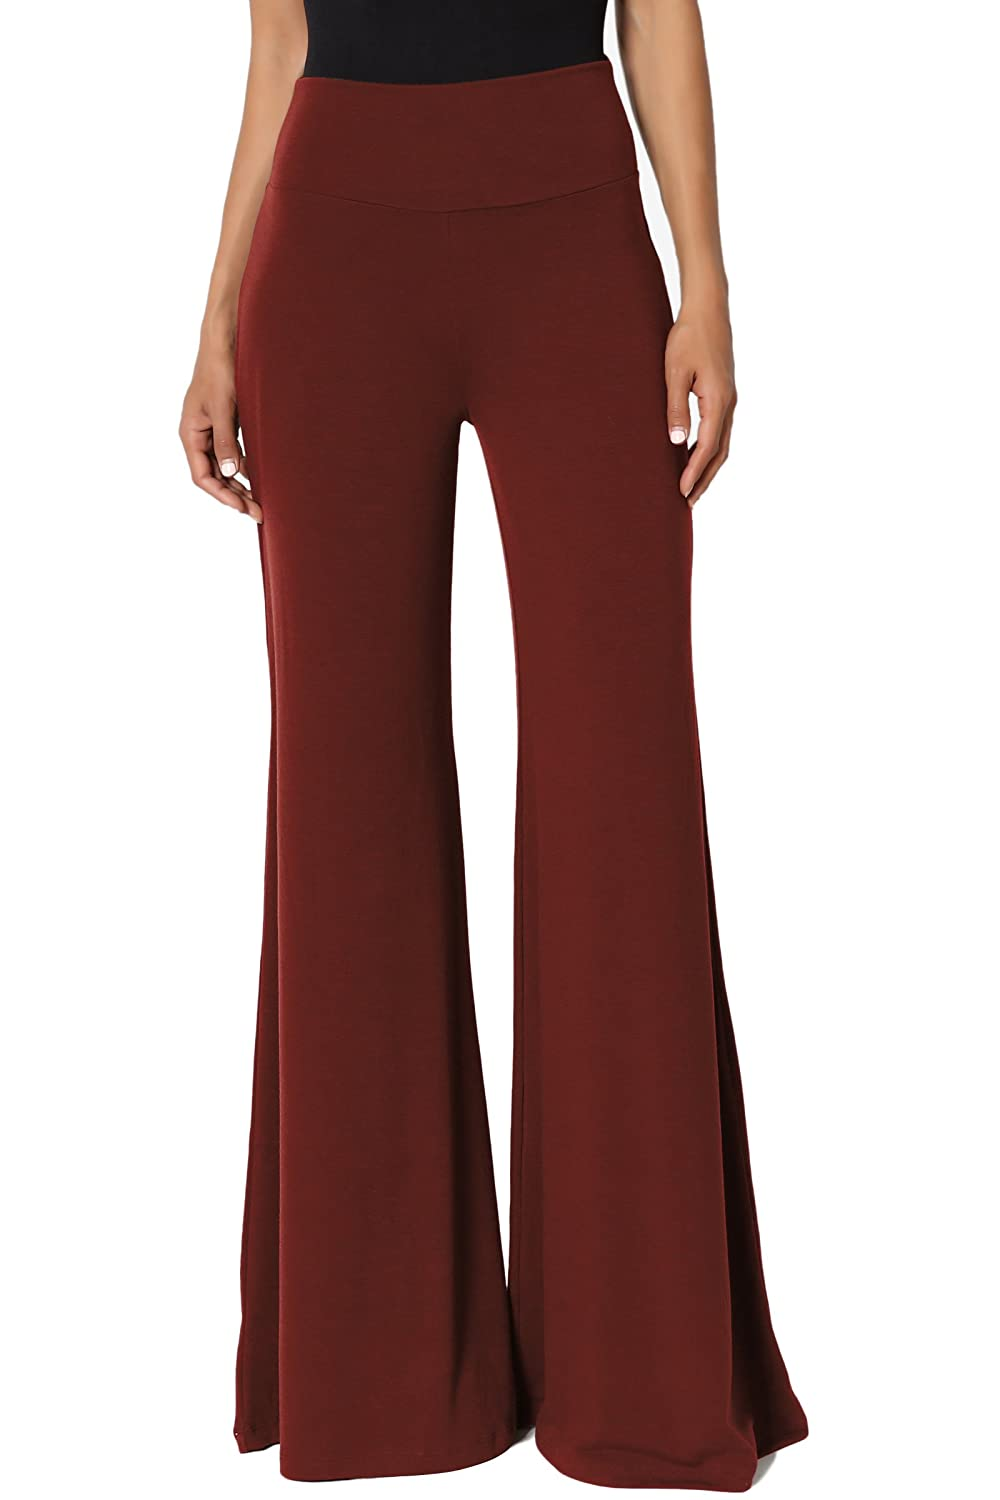 TheMogan Womens 33.5 Comfy Soft High Waist Wide Flare Leg Palazzo Lounge Pants